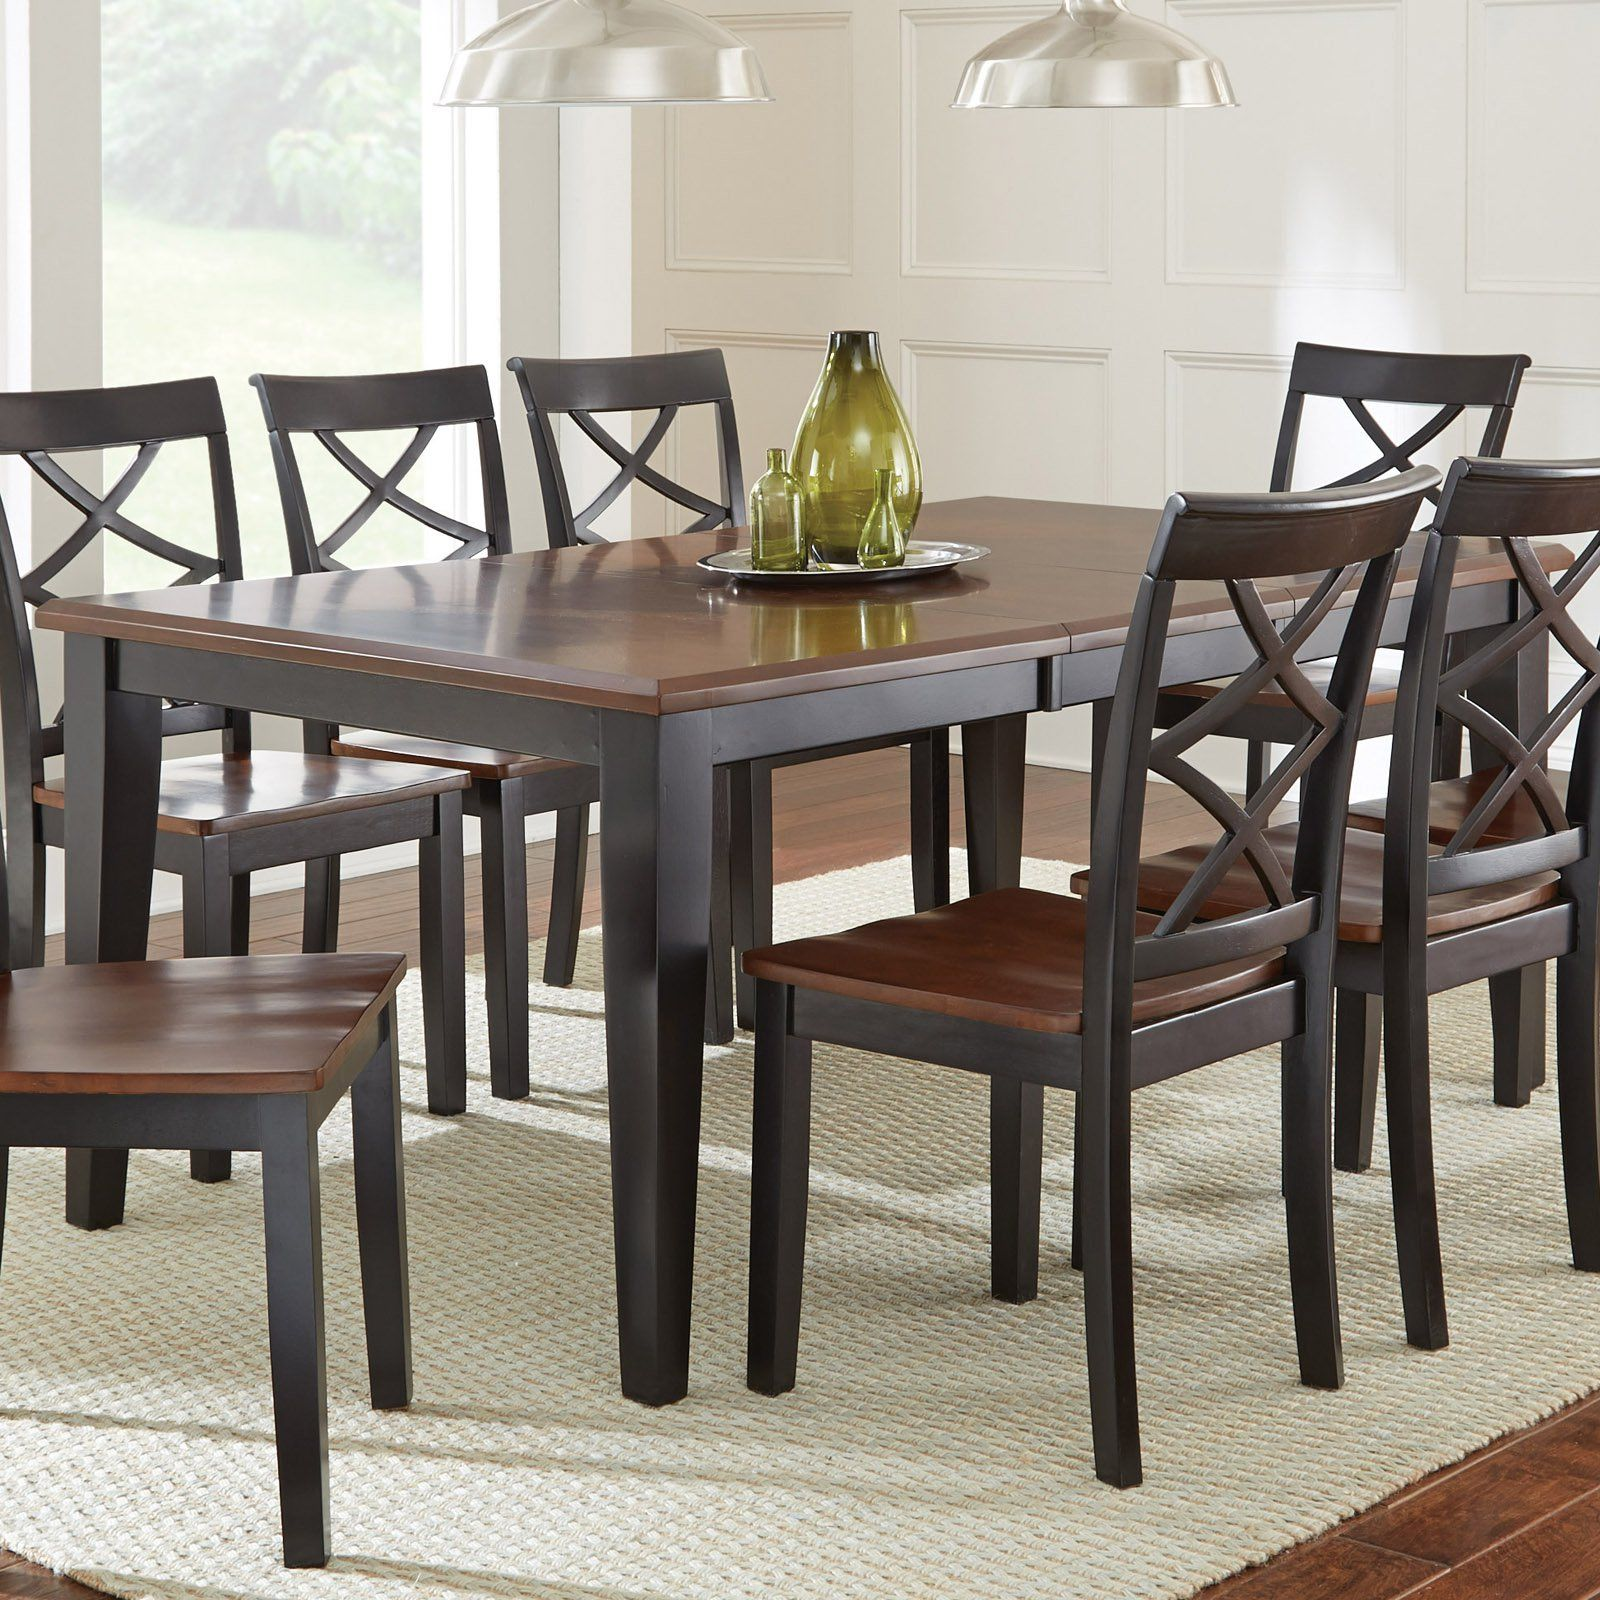 Steve Silver Rani Table  From Hayneedle  Architecture Prepossessing Steve Silver Dining Room Set Review